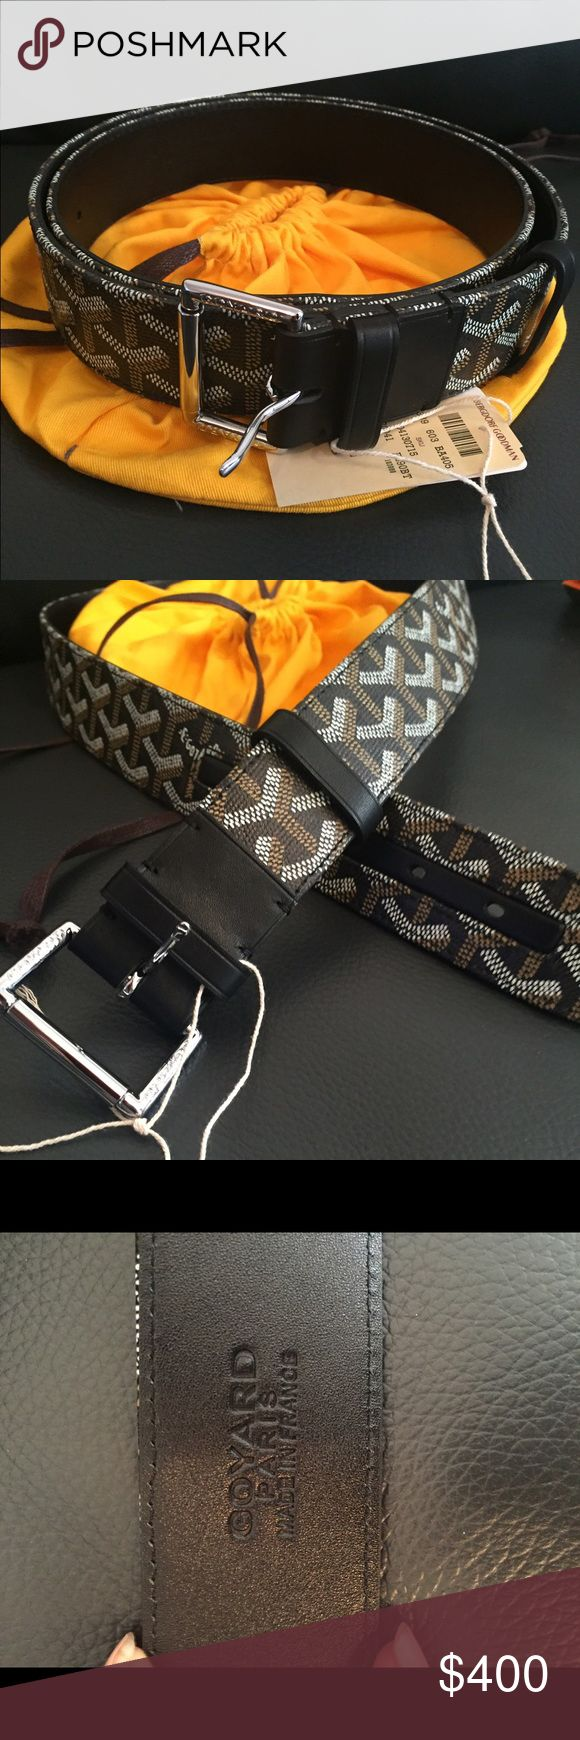 NWT Black Goyard Belt Brand new and authentic black Goyard. Comes with all original tags, and yellow Goyard pouch. Ask for size. Goyard Accessories Belts